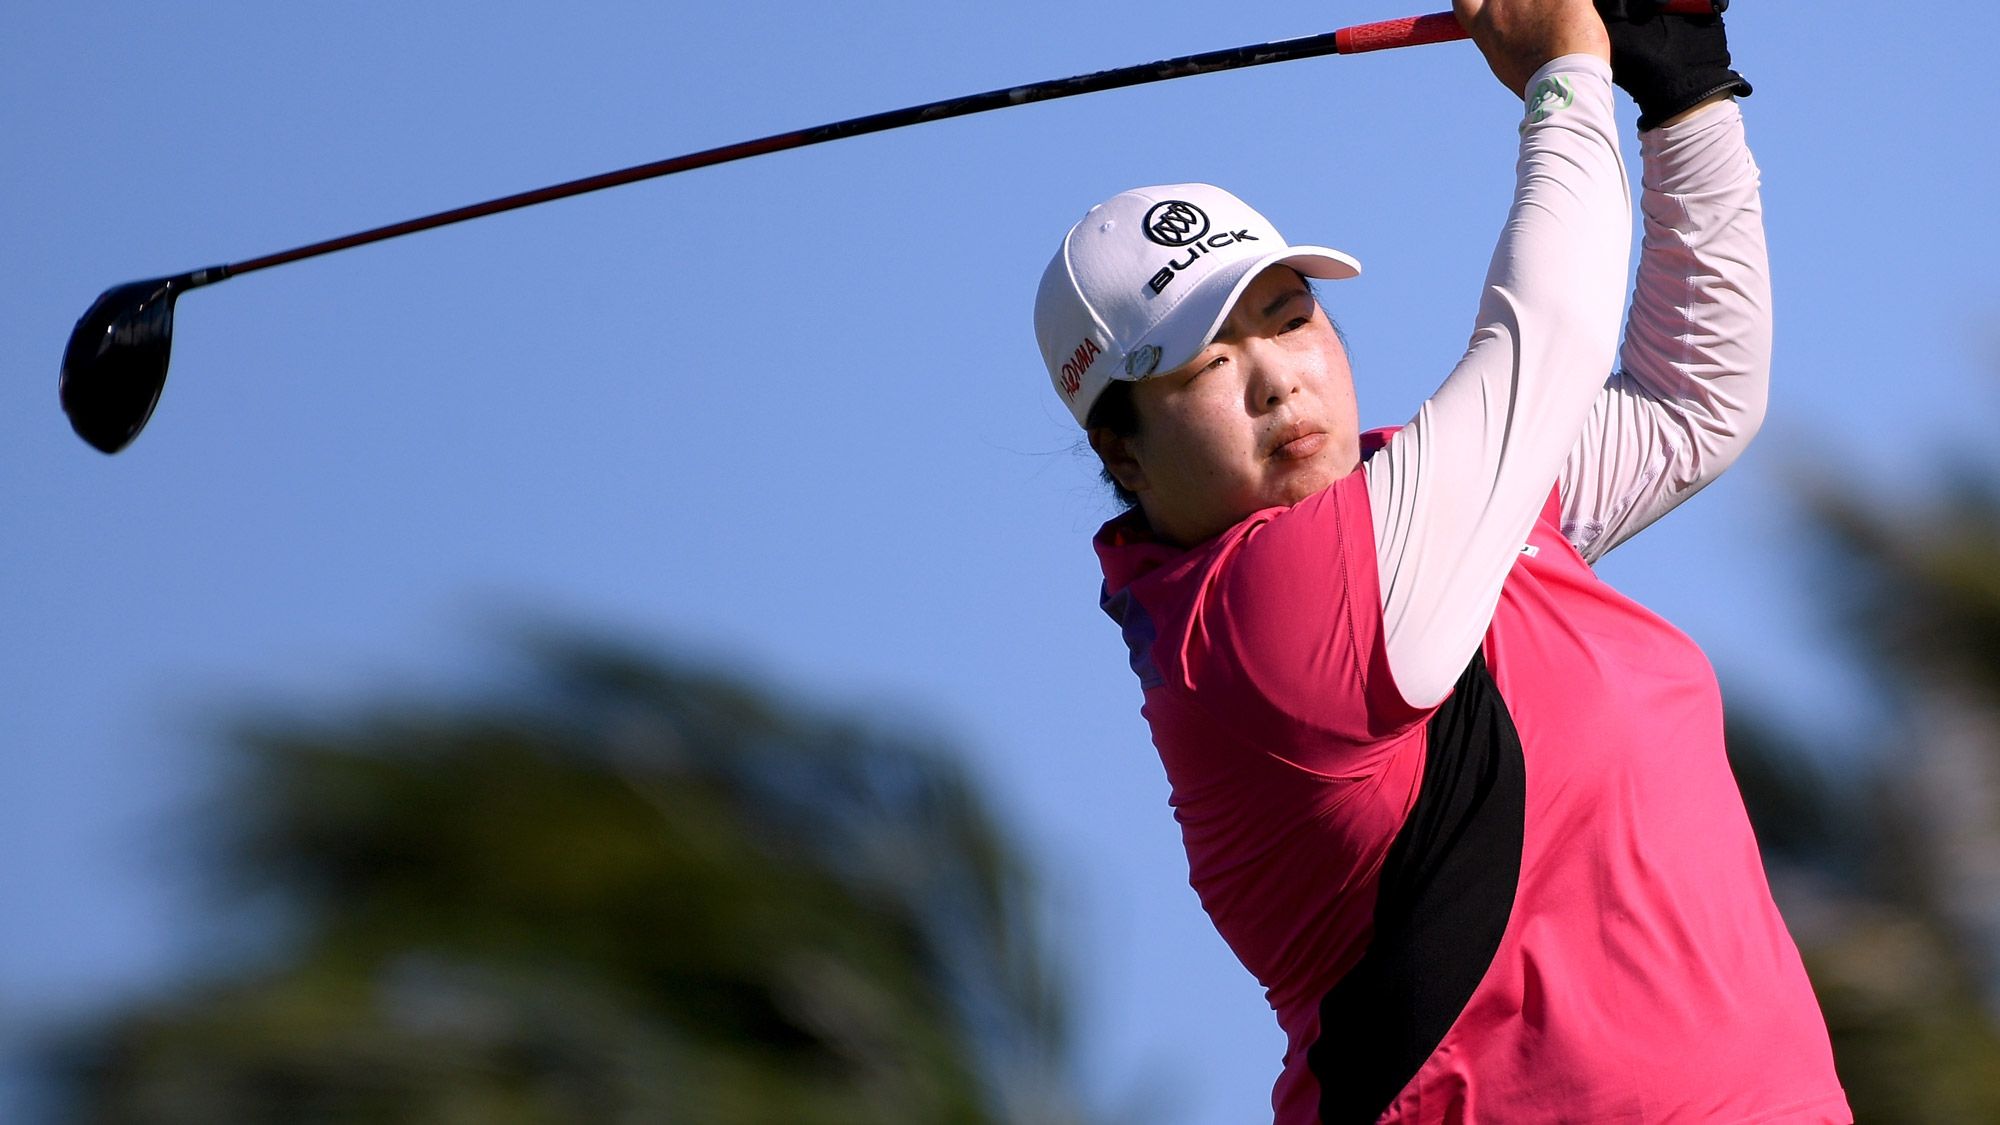 Canadian Brooke Henderson takes lead at Lotte Championship